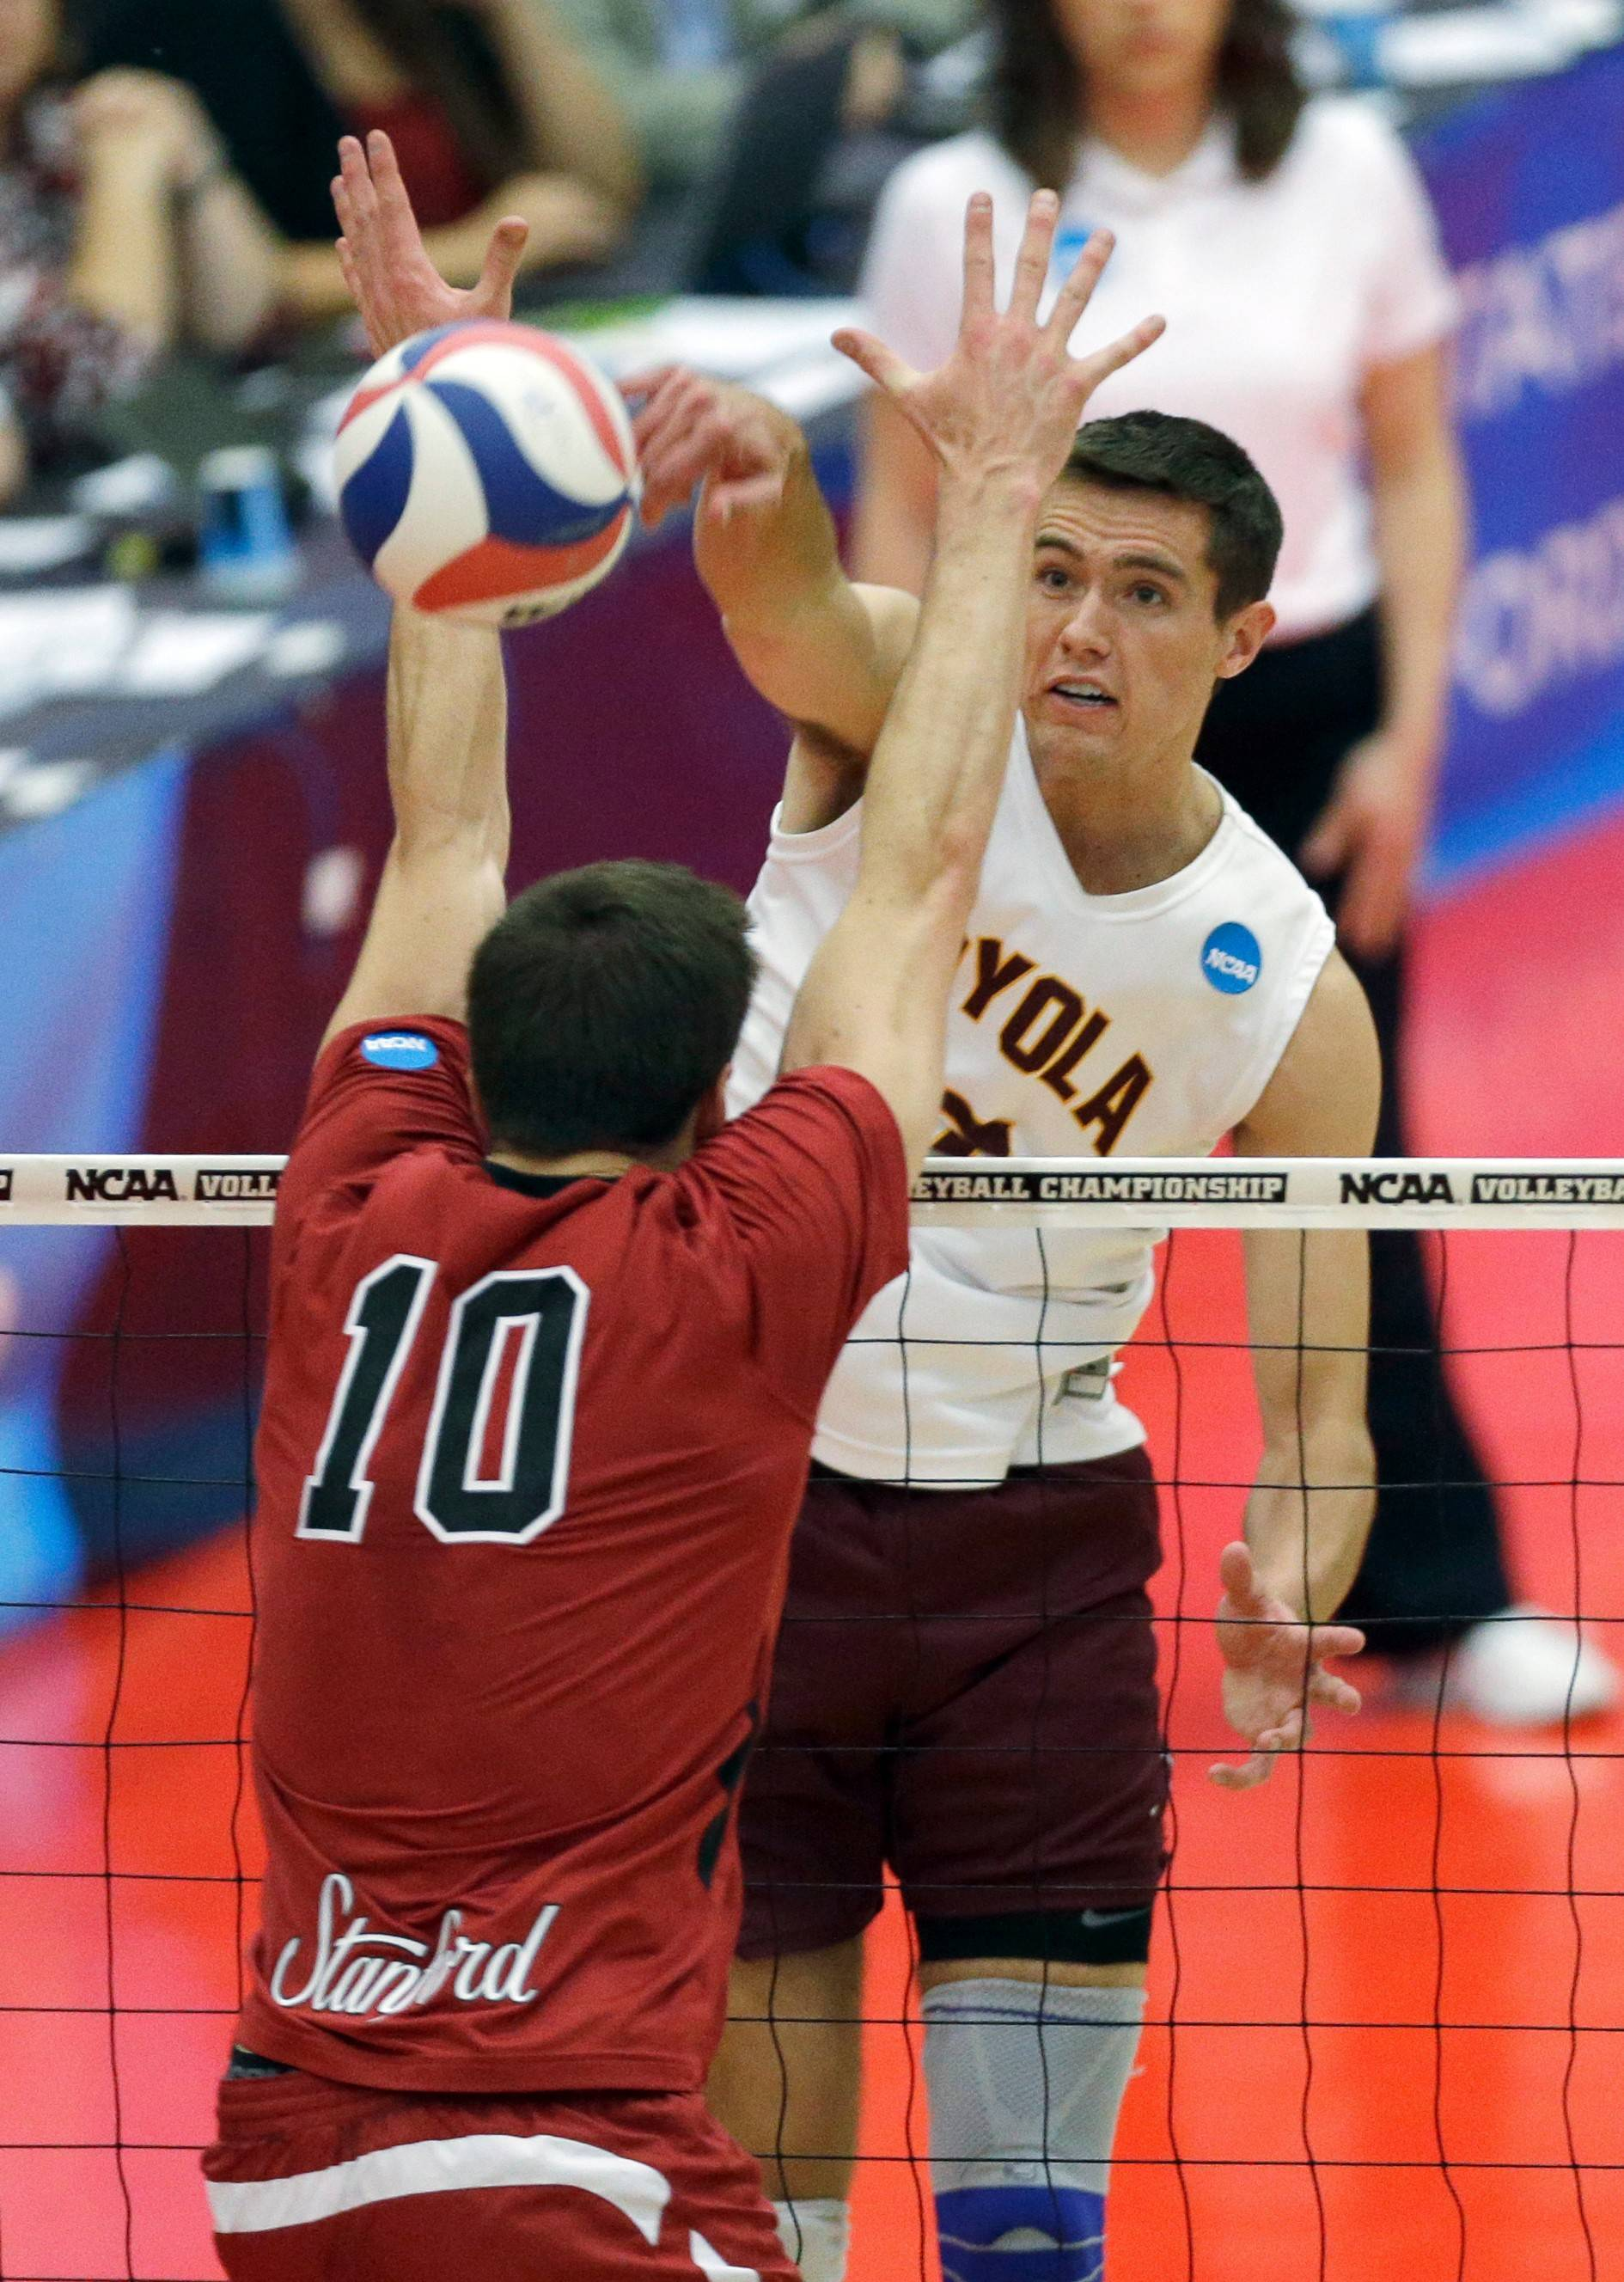 After winning a state title with Wheaton Warrenville South, Thomas Jaeschke, right, helped Loyola University Chicago capture the NCAA men's volleyball championship earlier this month. Now Jaeschke is practicing with the U.S. National Team.